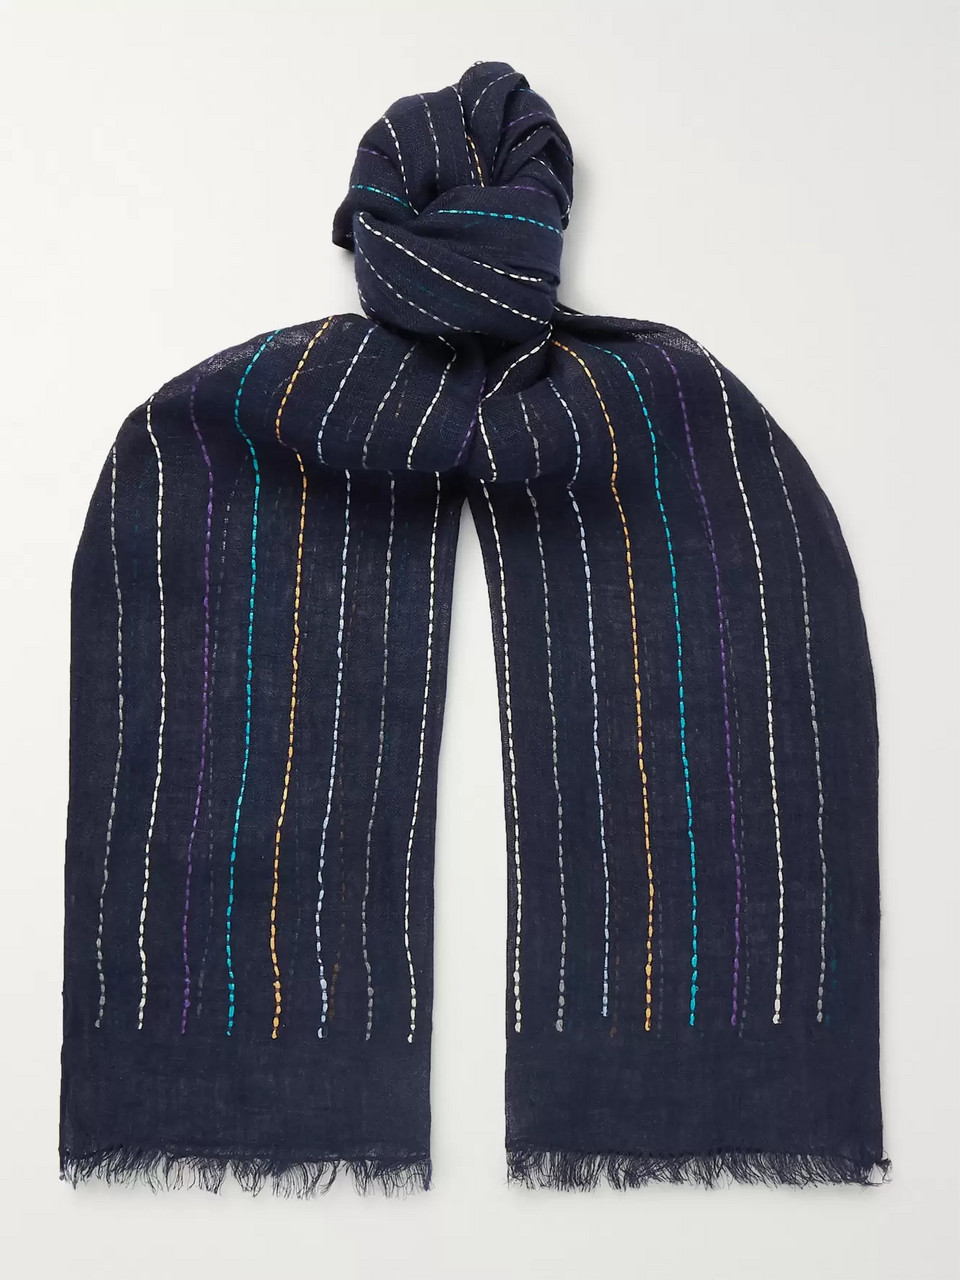 Paul Smith Fringed Embroidered Linen Scarf